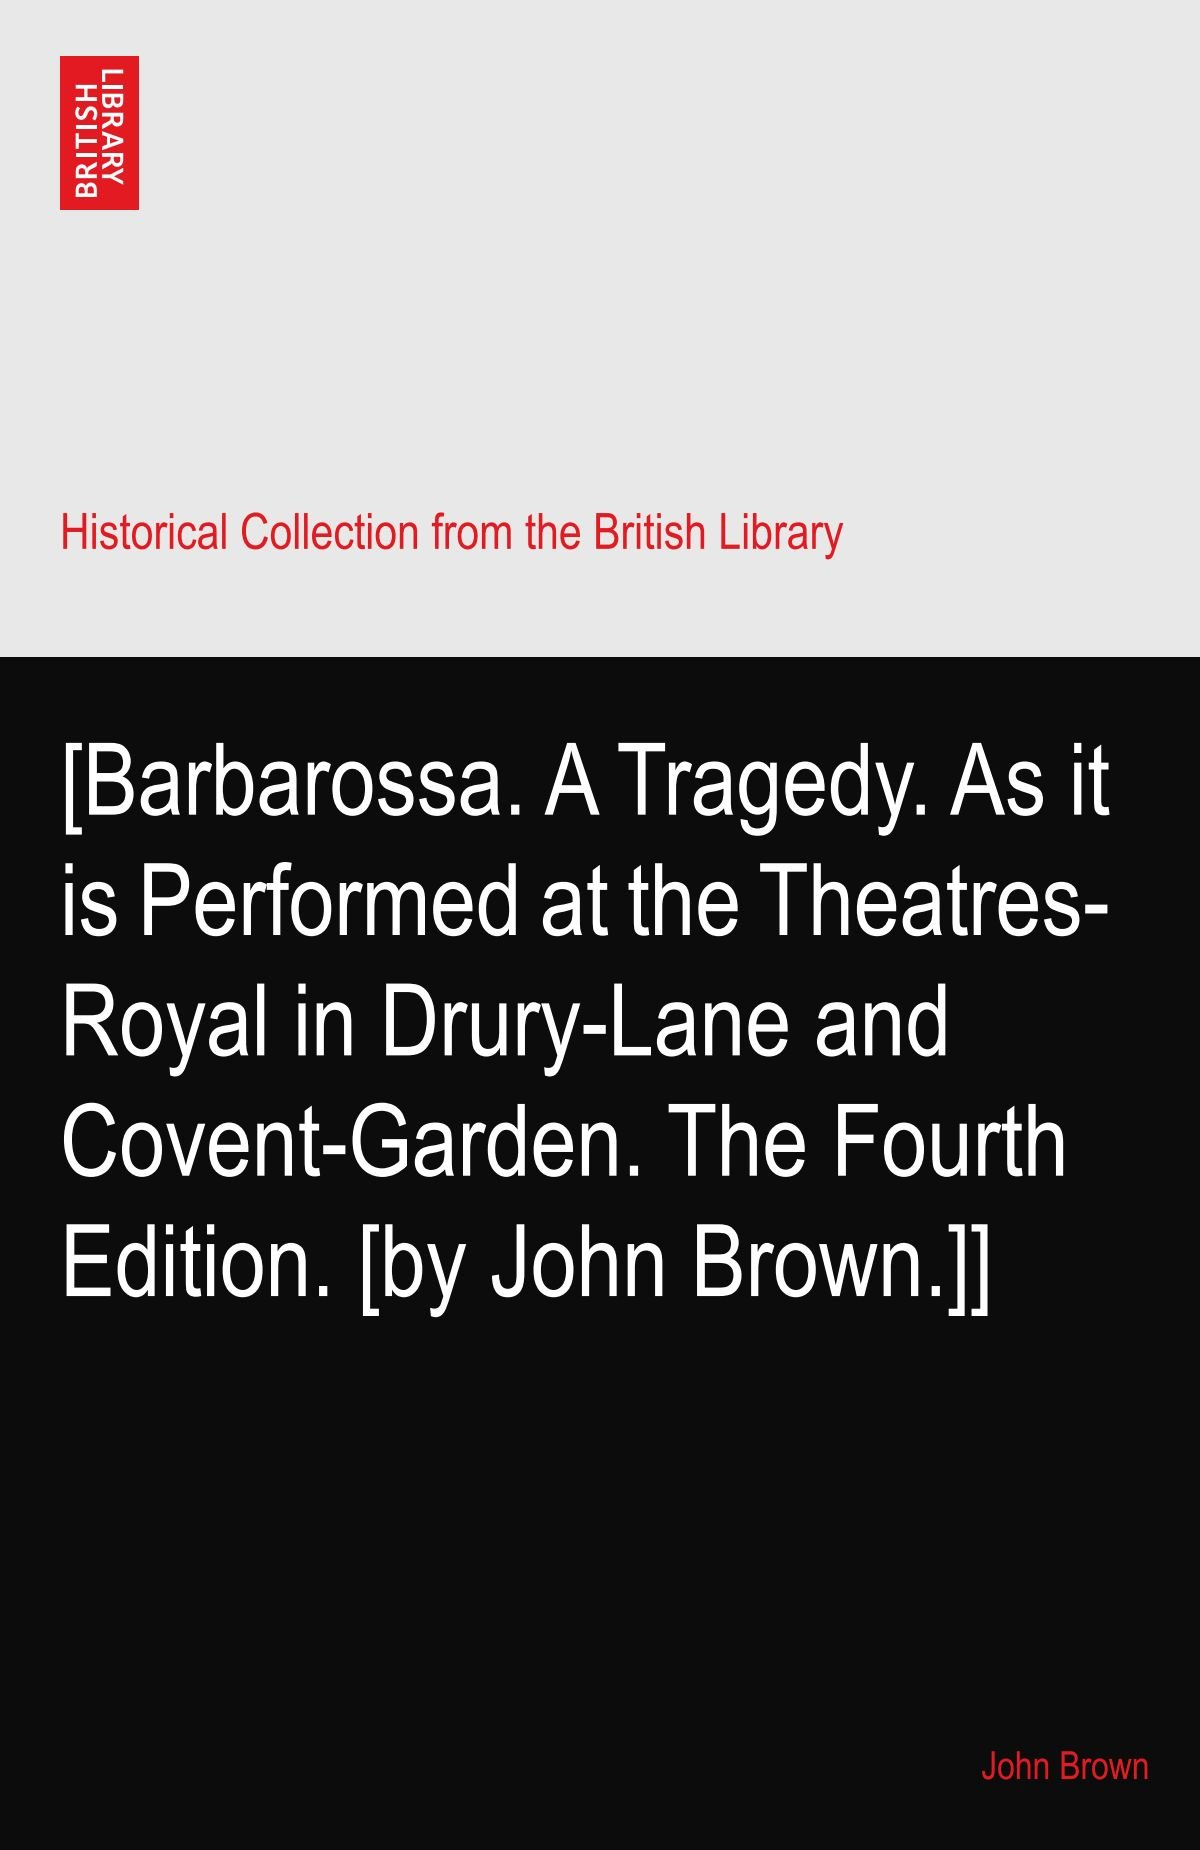 Download [Barbarossa. A Tragedy. As it is Performed at the Theatres-Royal in Drury-Lane and Covent-Garden. The Fourth Edition. [by John Brown.]] ebook